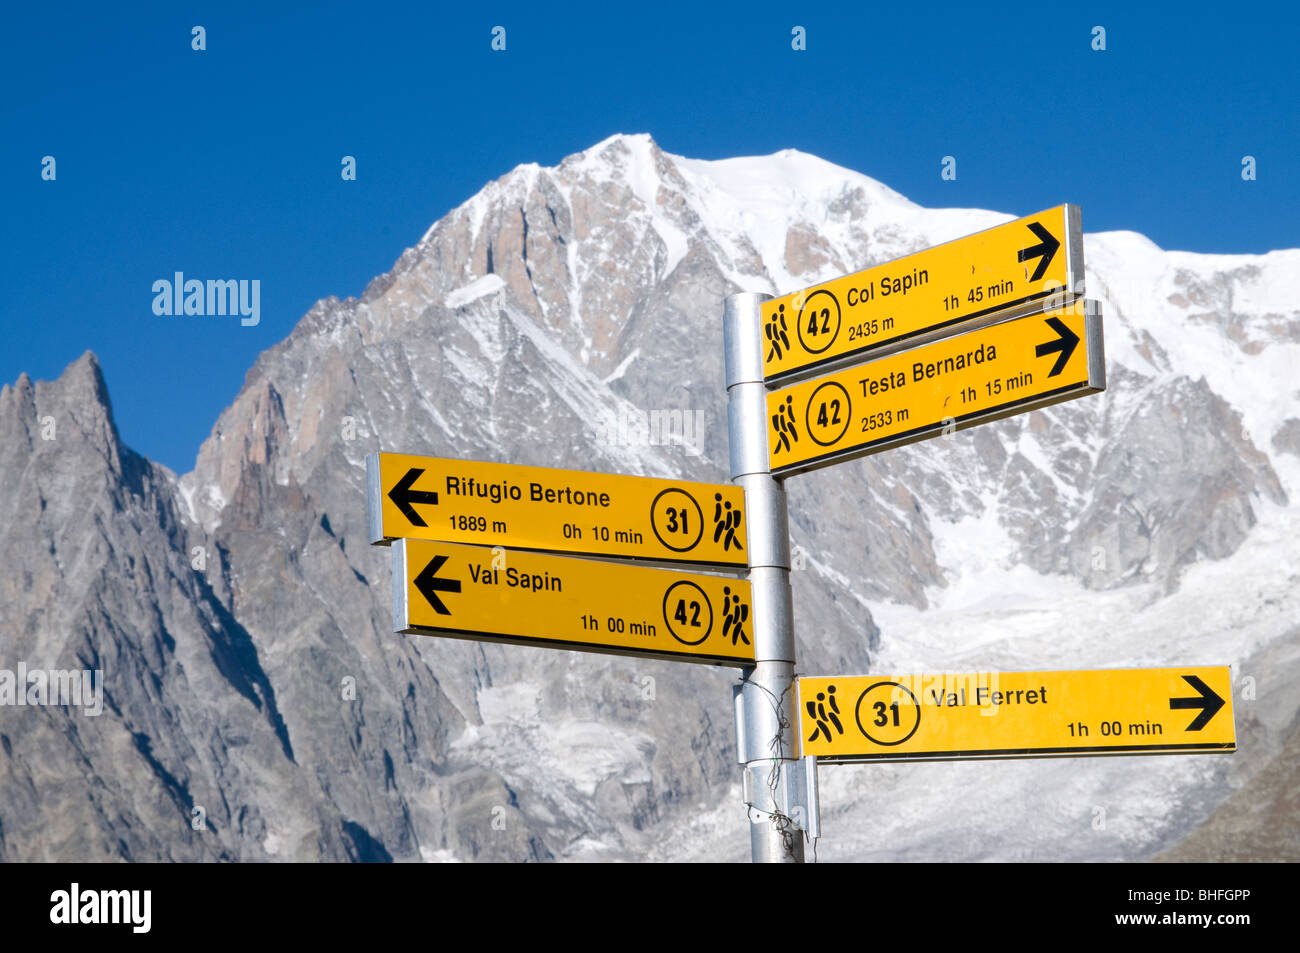 mont blanc (monte bianco), courmayeur, valle d'aosta, italy - Stock Image